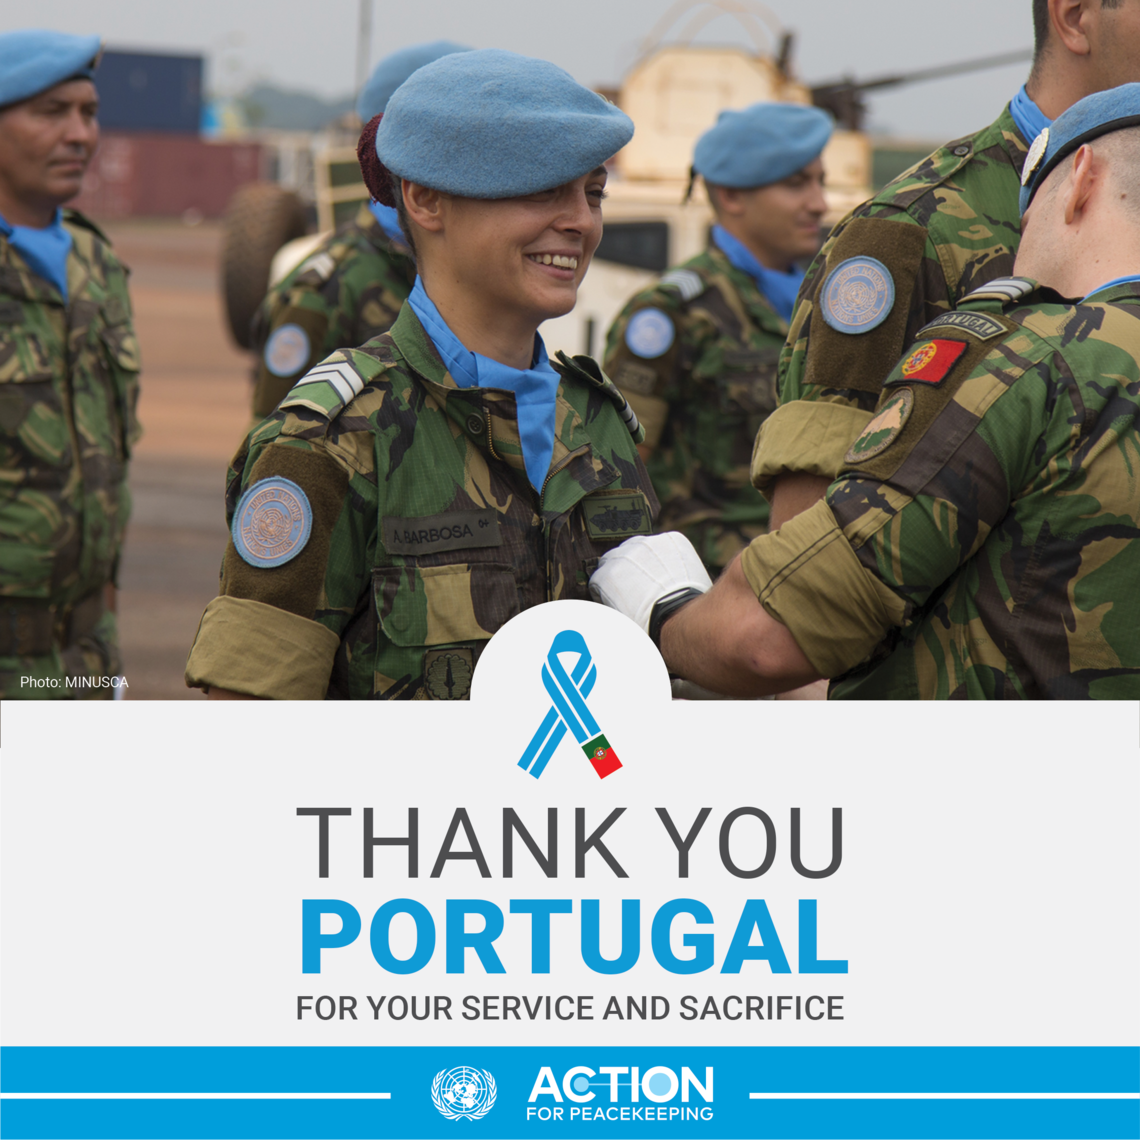 Thank you Portugal for your service and sacrifice